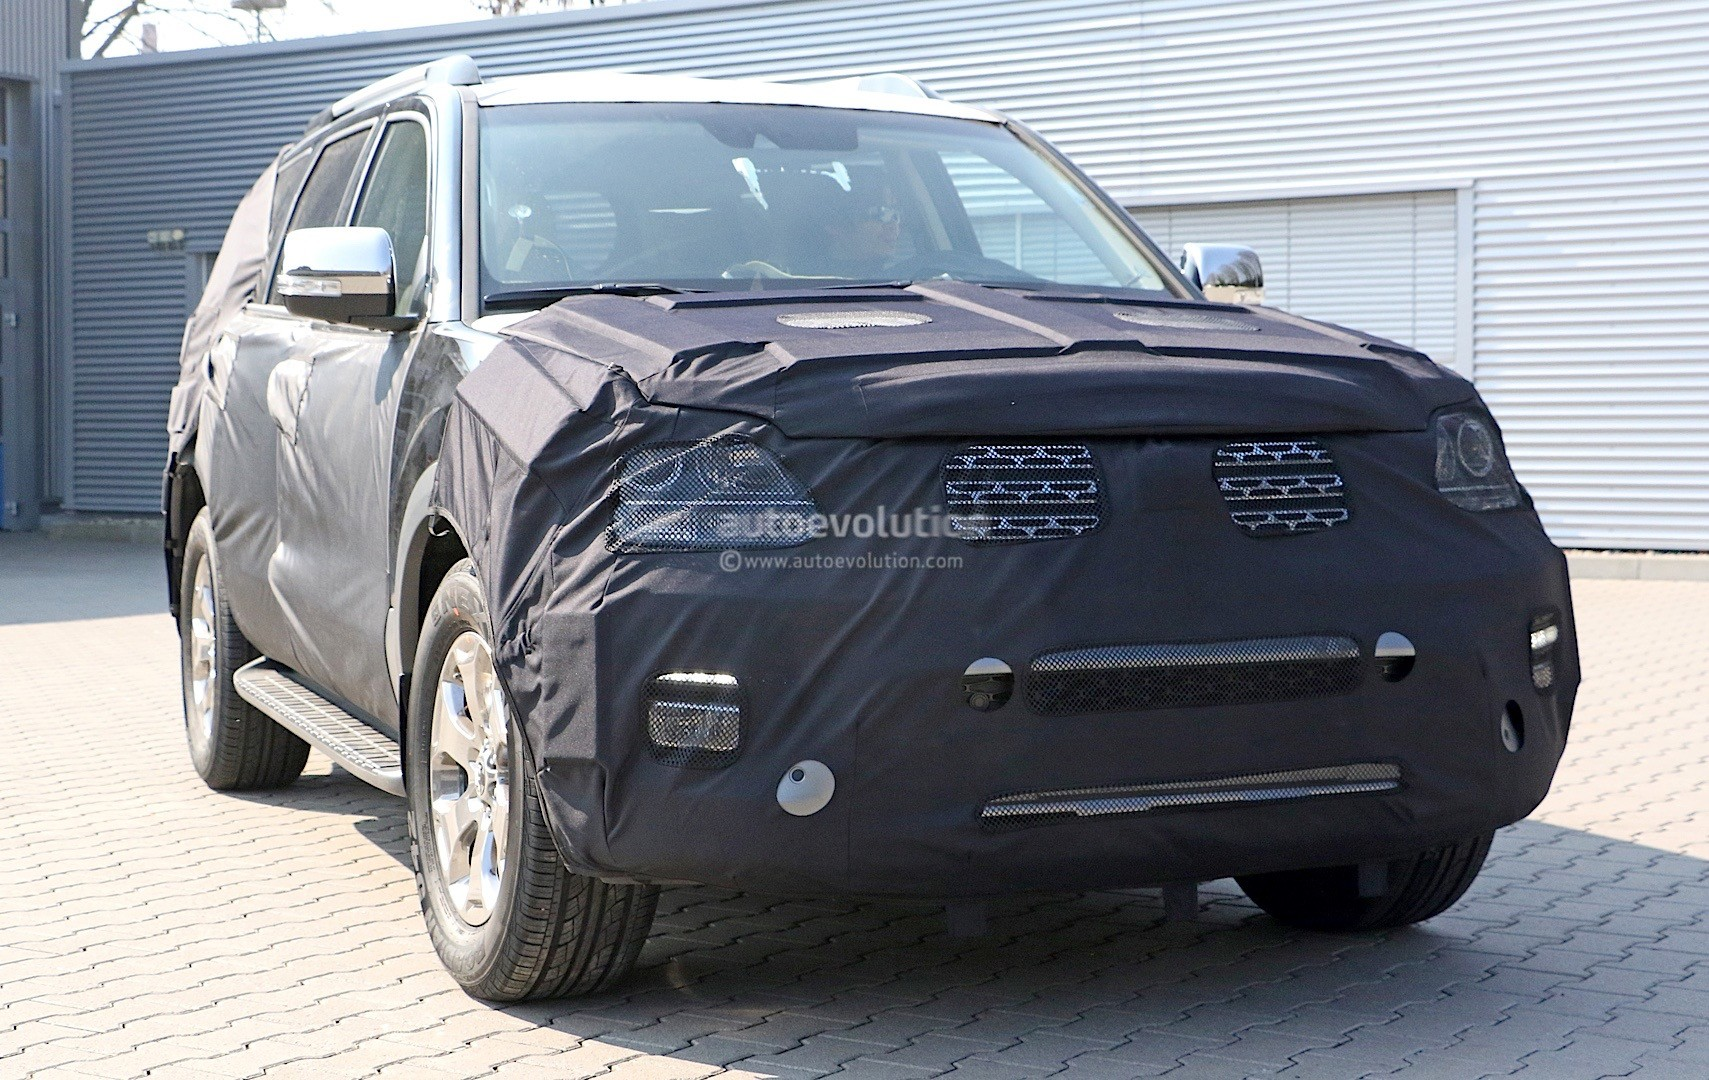 2016 Kia Mohave Facelift Spied Won T Come To The U S As